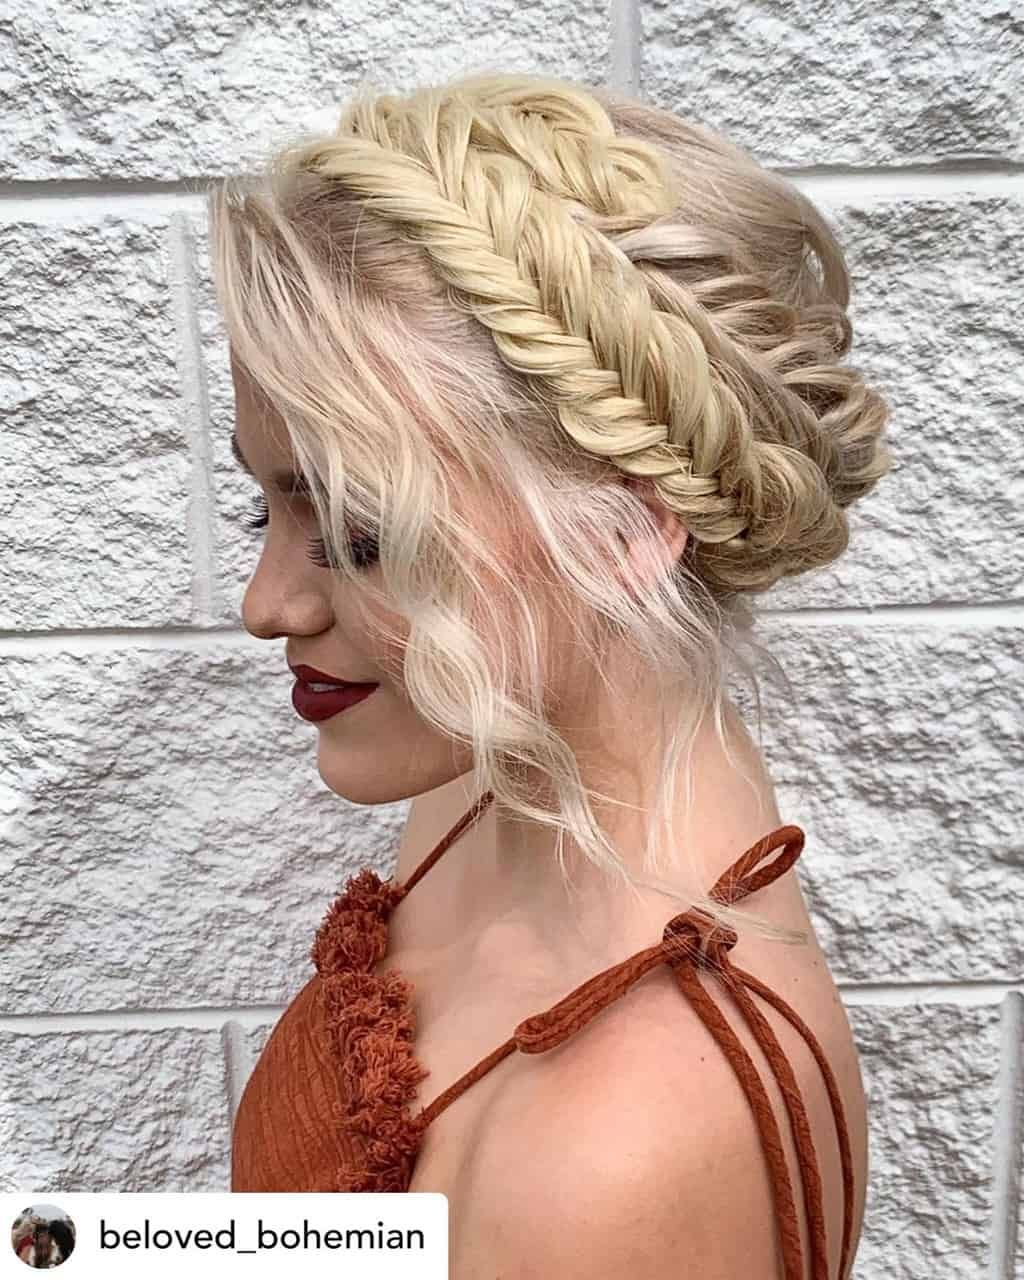 15 Incredibly Cute New Year S Eve Hairstyles 2020 Tutorials Included Braided Hairstyles Bohemian Hairstyles Easy Hairstyles